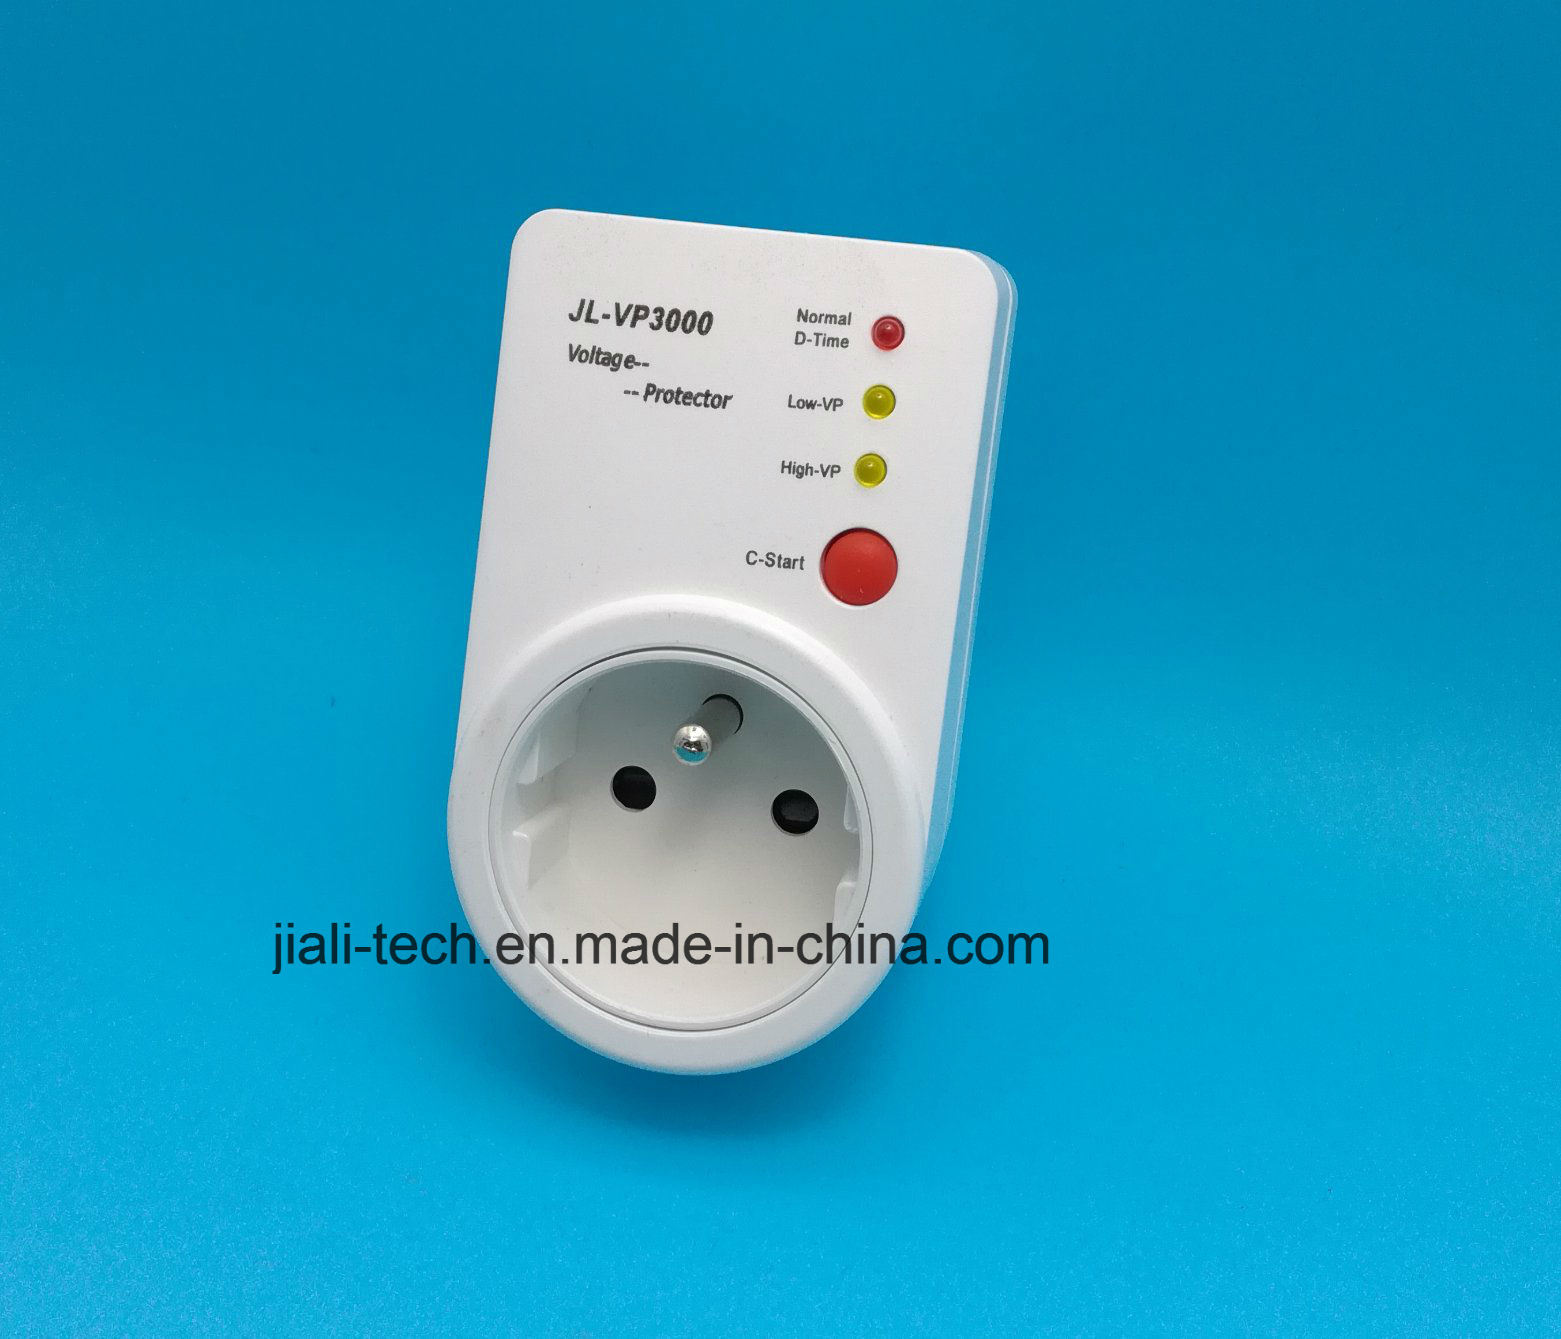 China Automatic Under Over Voltage Protection Relay With Plug Surge Low Remote Mains Switch And Protector Fridge Guard